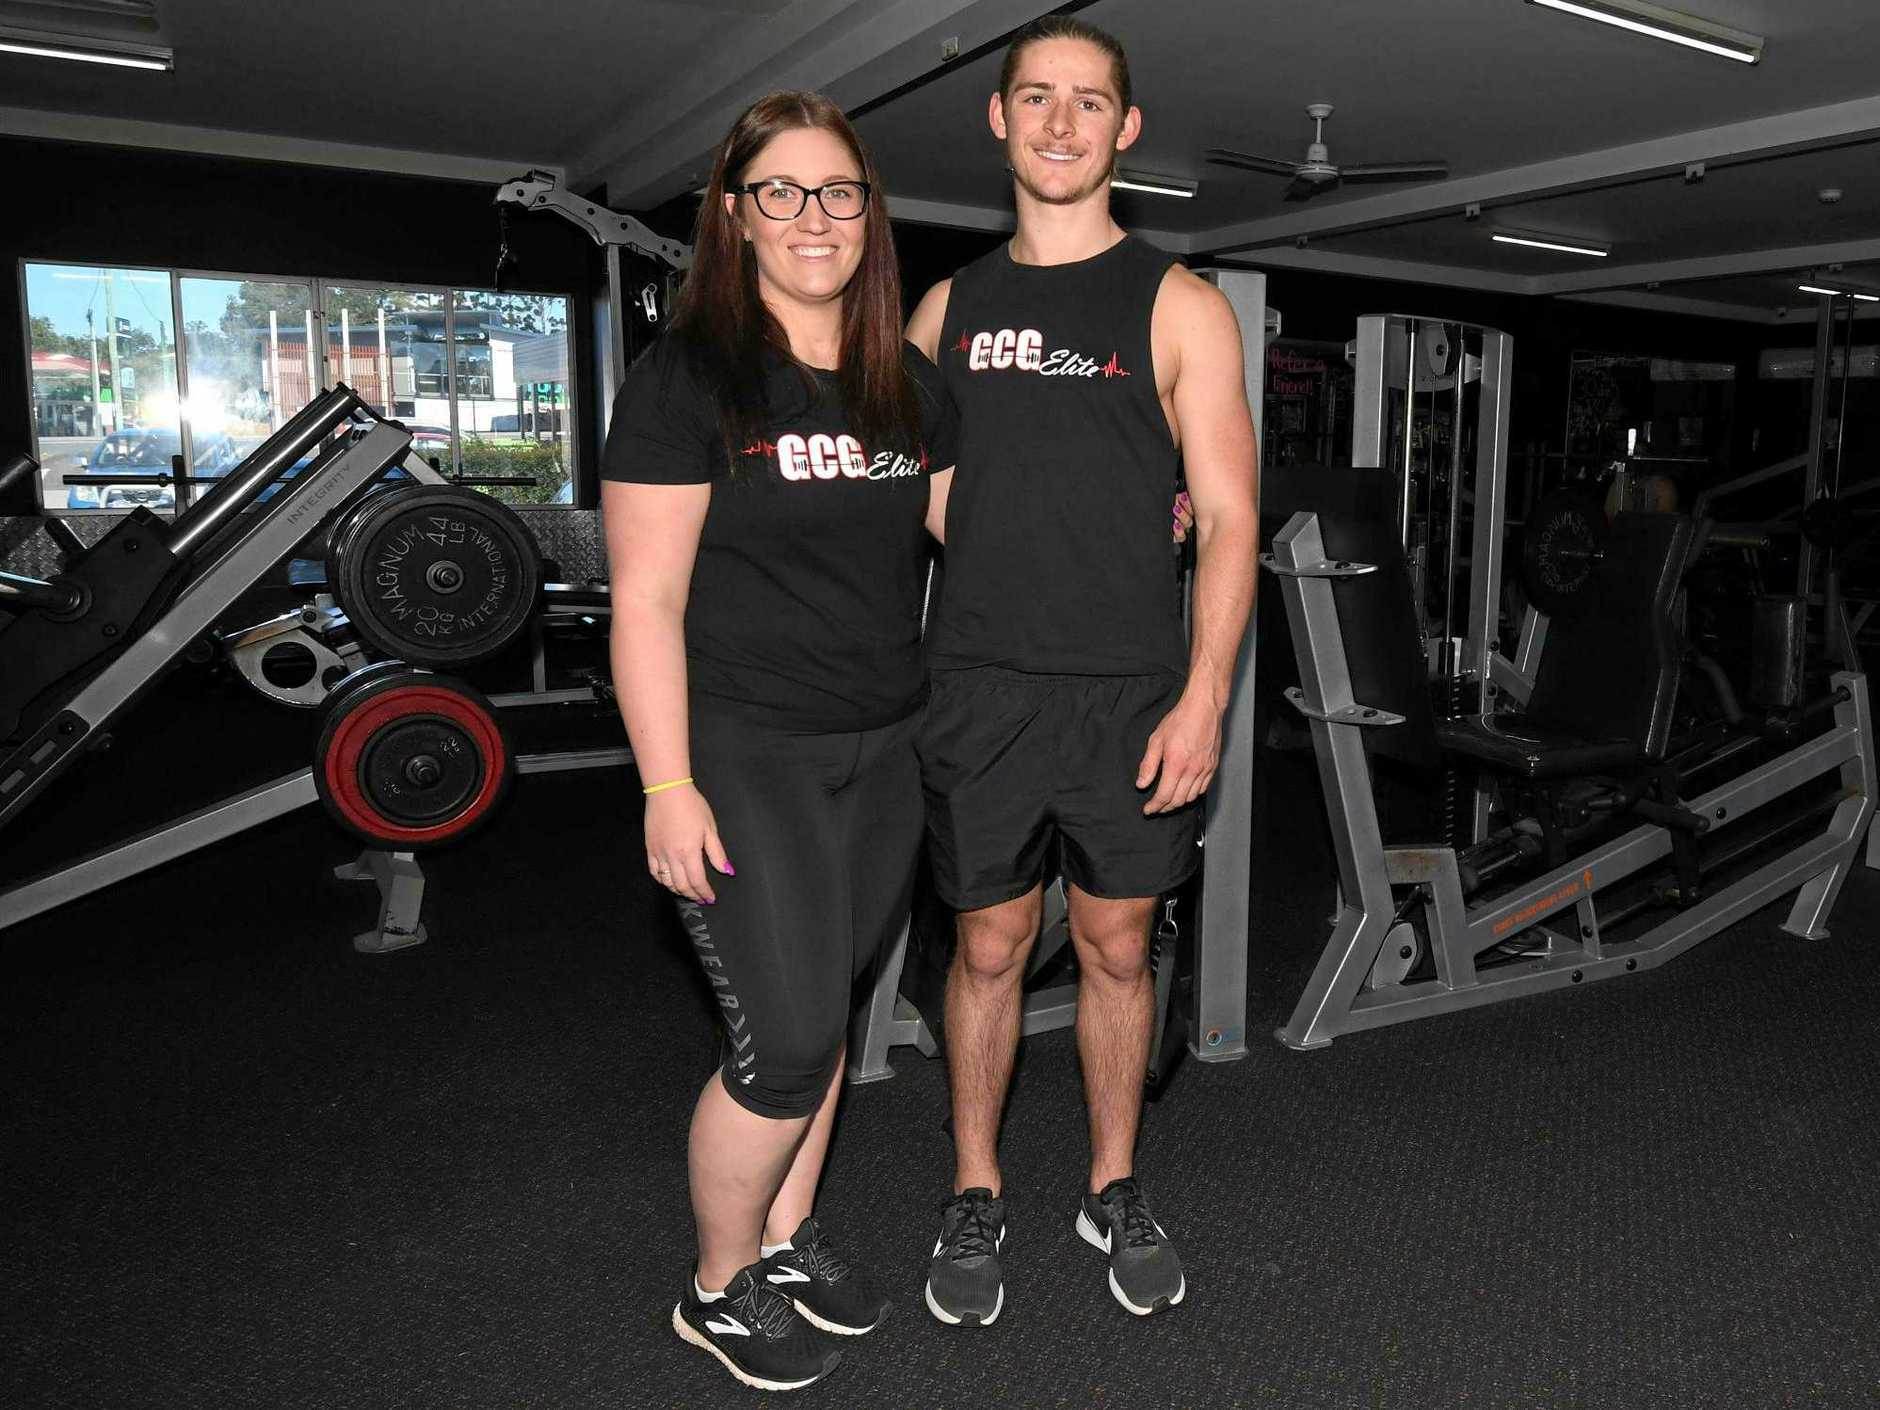 JOIN THE CLUB: Ashleigh Rimmington and Louie Langmead of Gympie City Gym are taking a team to the Gold Coast Spartan Race next month.